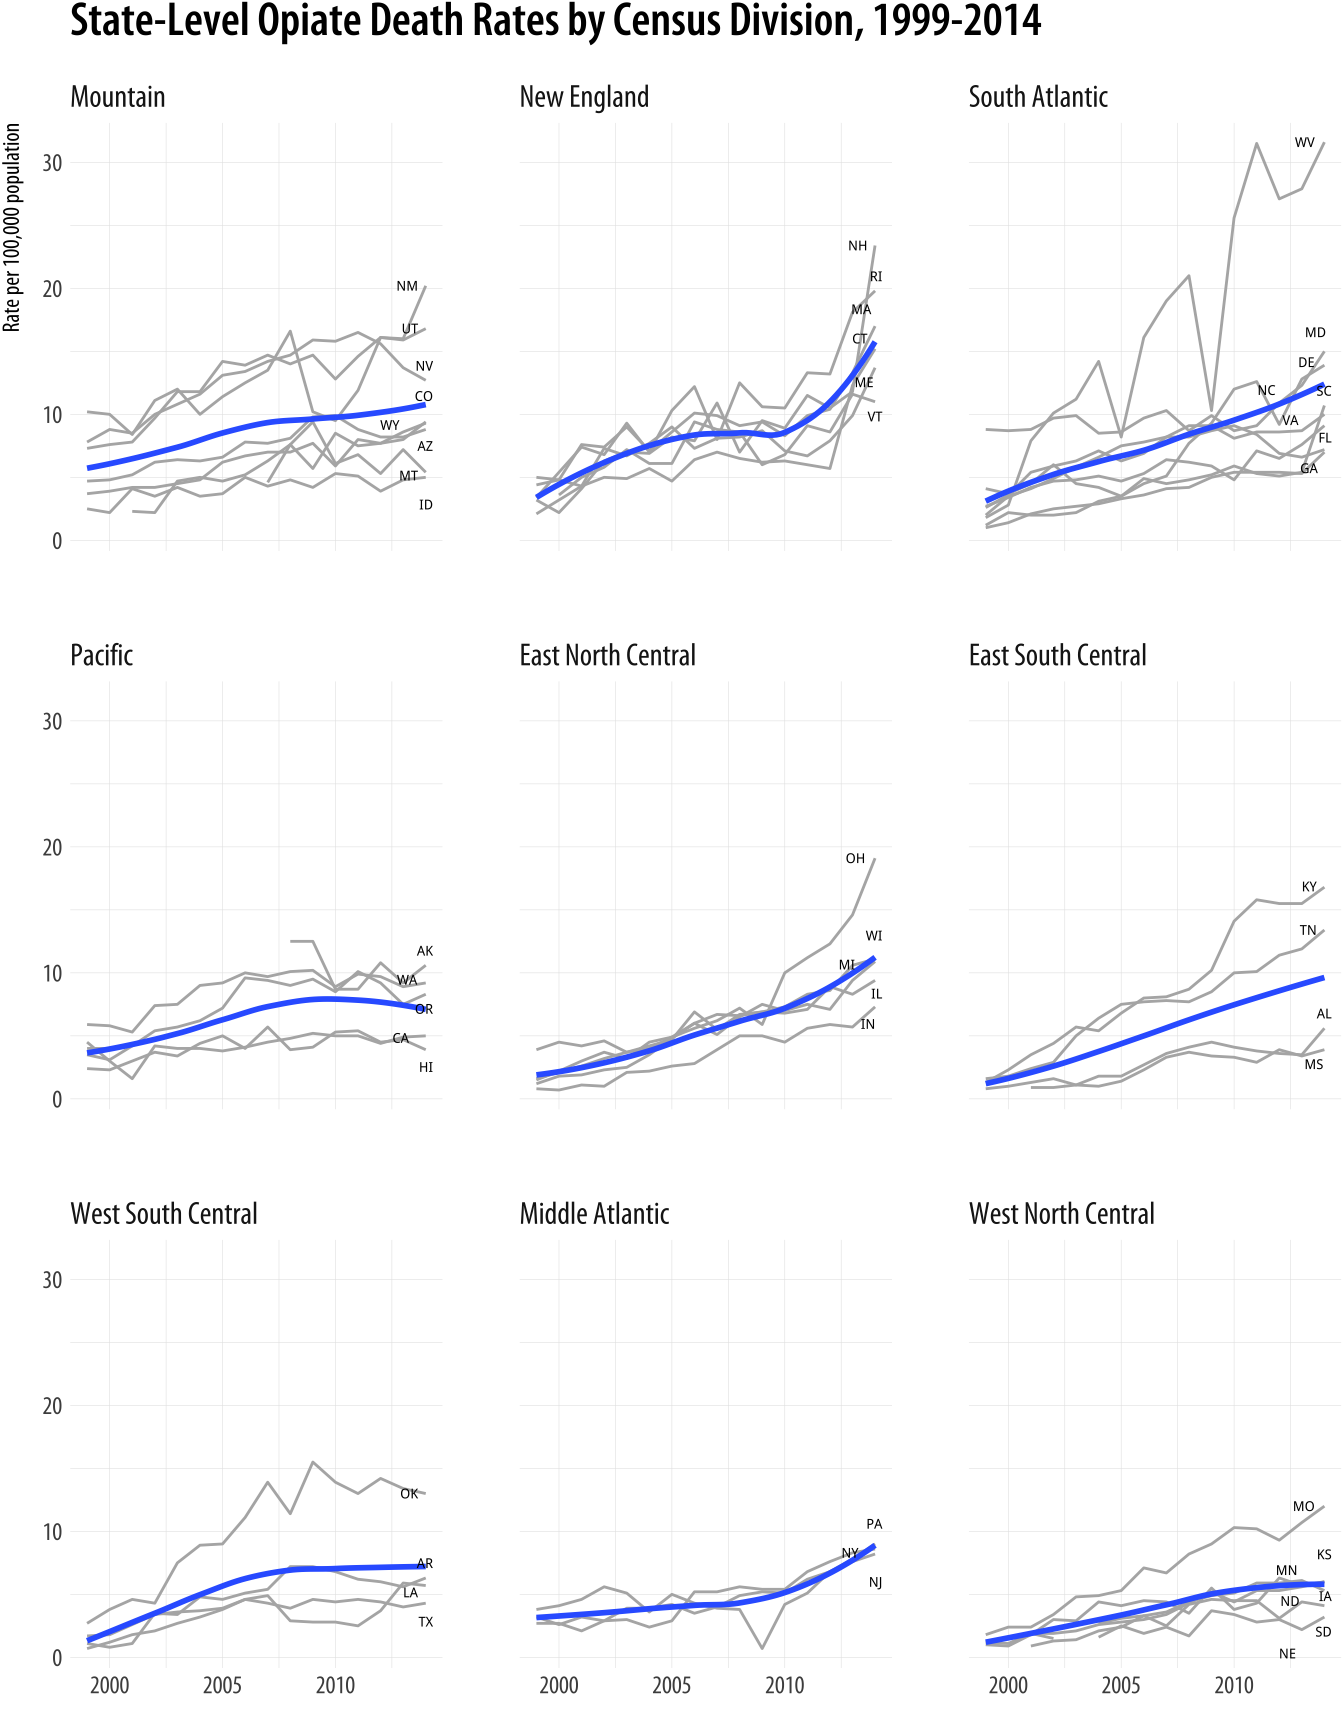 The opiate data as a time series plot.